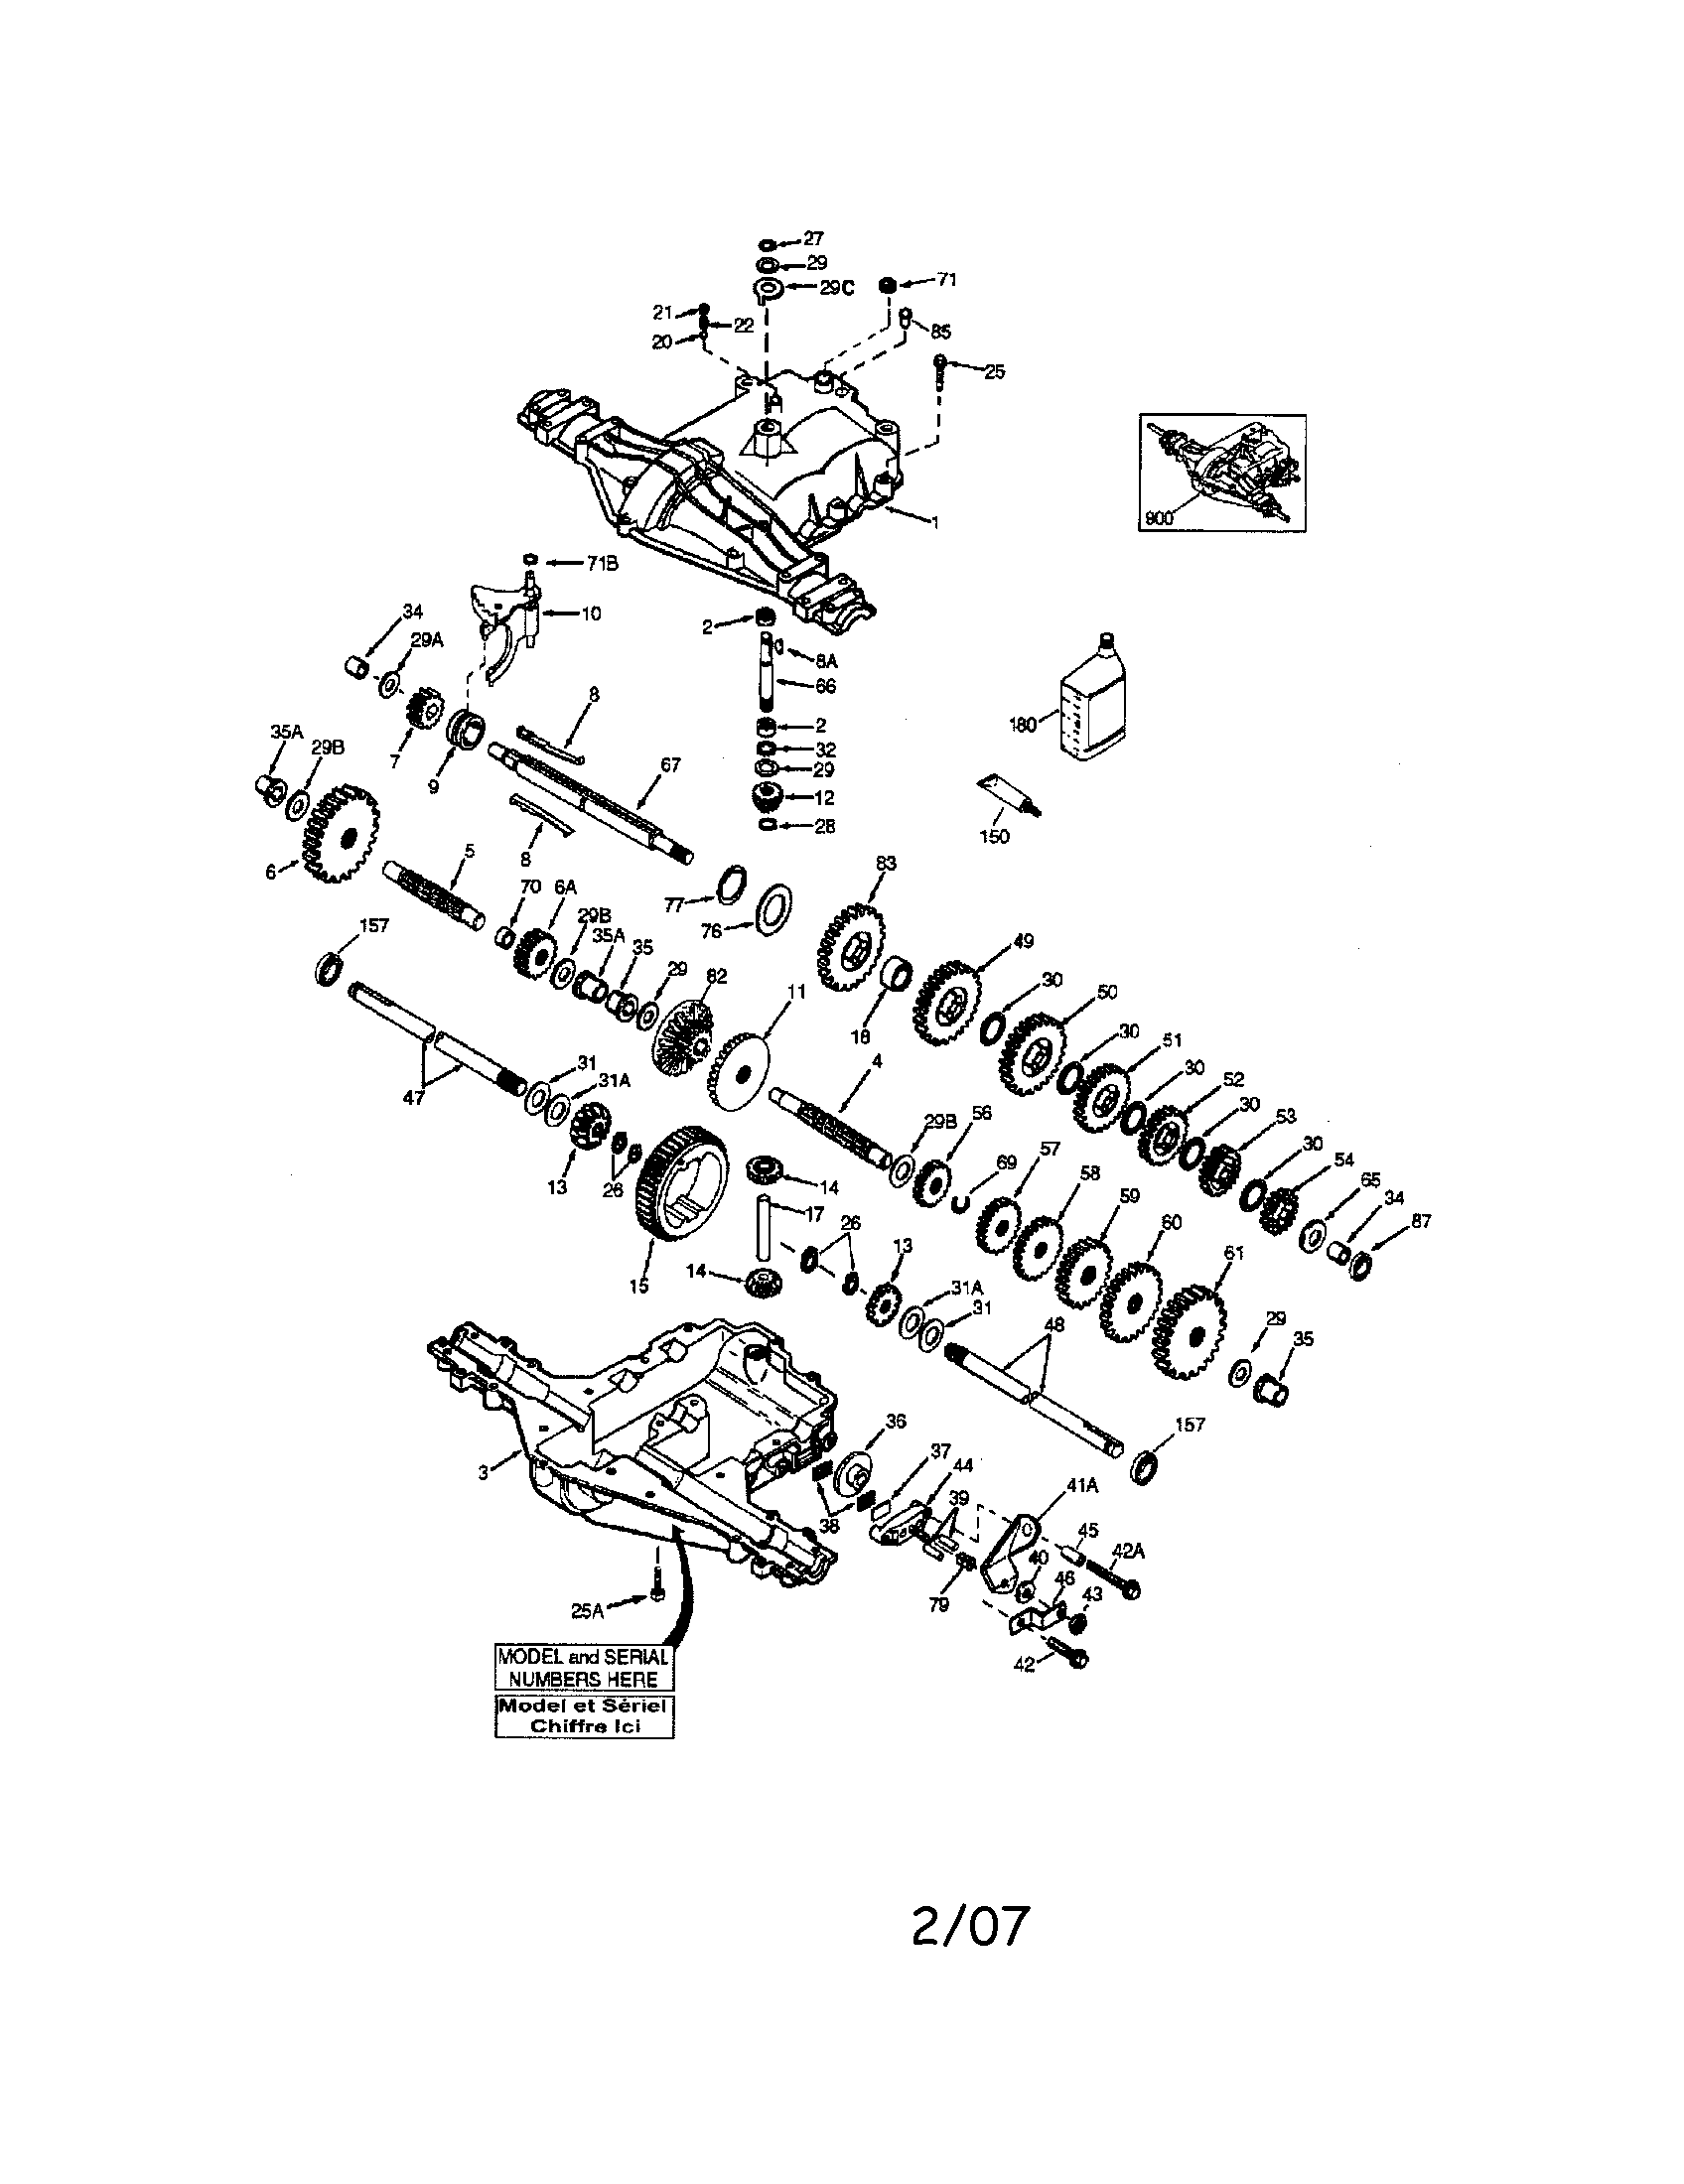 Peerless Transaxle Diagram  U0026 Parts List For Model 917270812 Craftsman